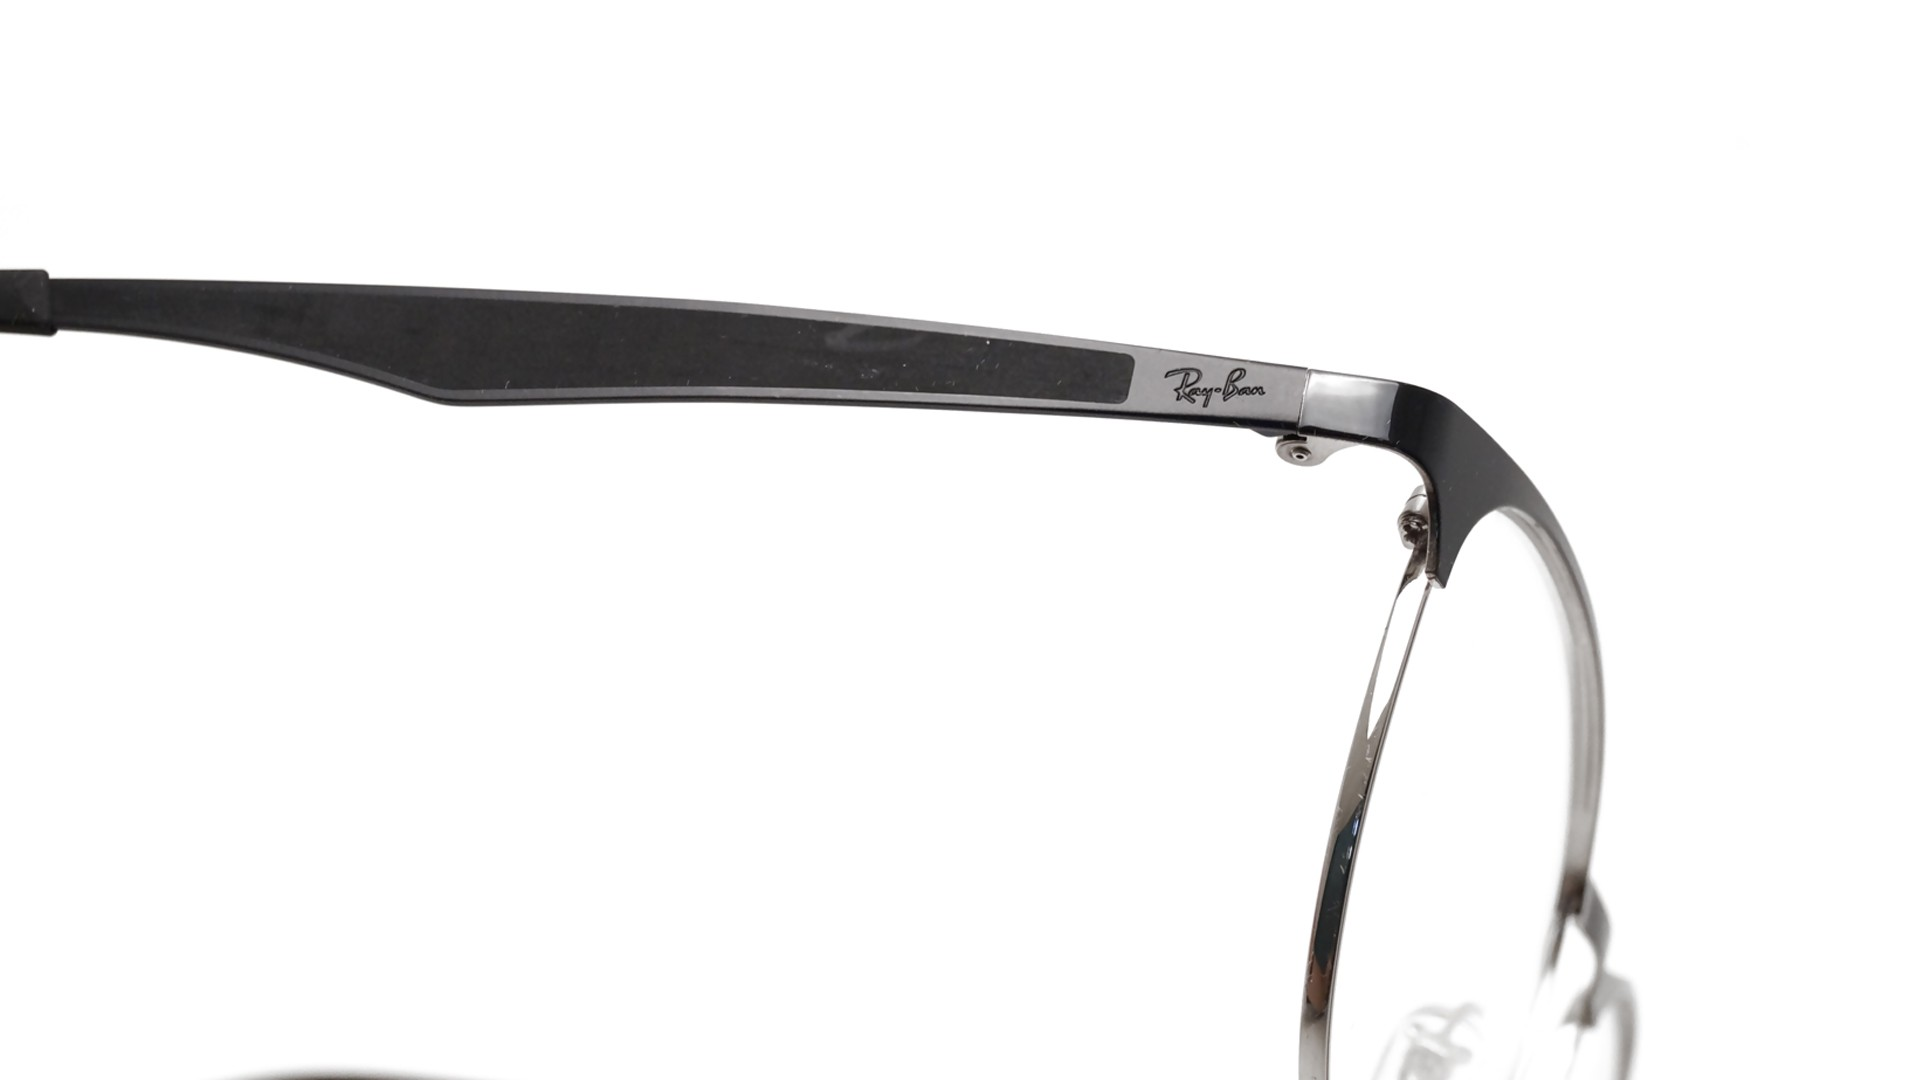 1c73a0bf459 ray ban clubmaster sunglasses black and silver luxottica ray-ban ...